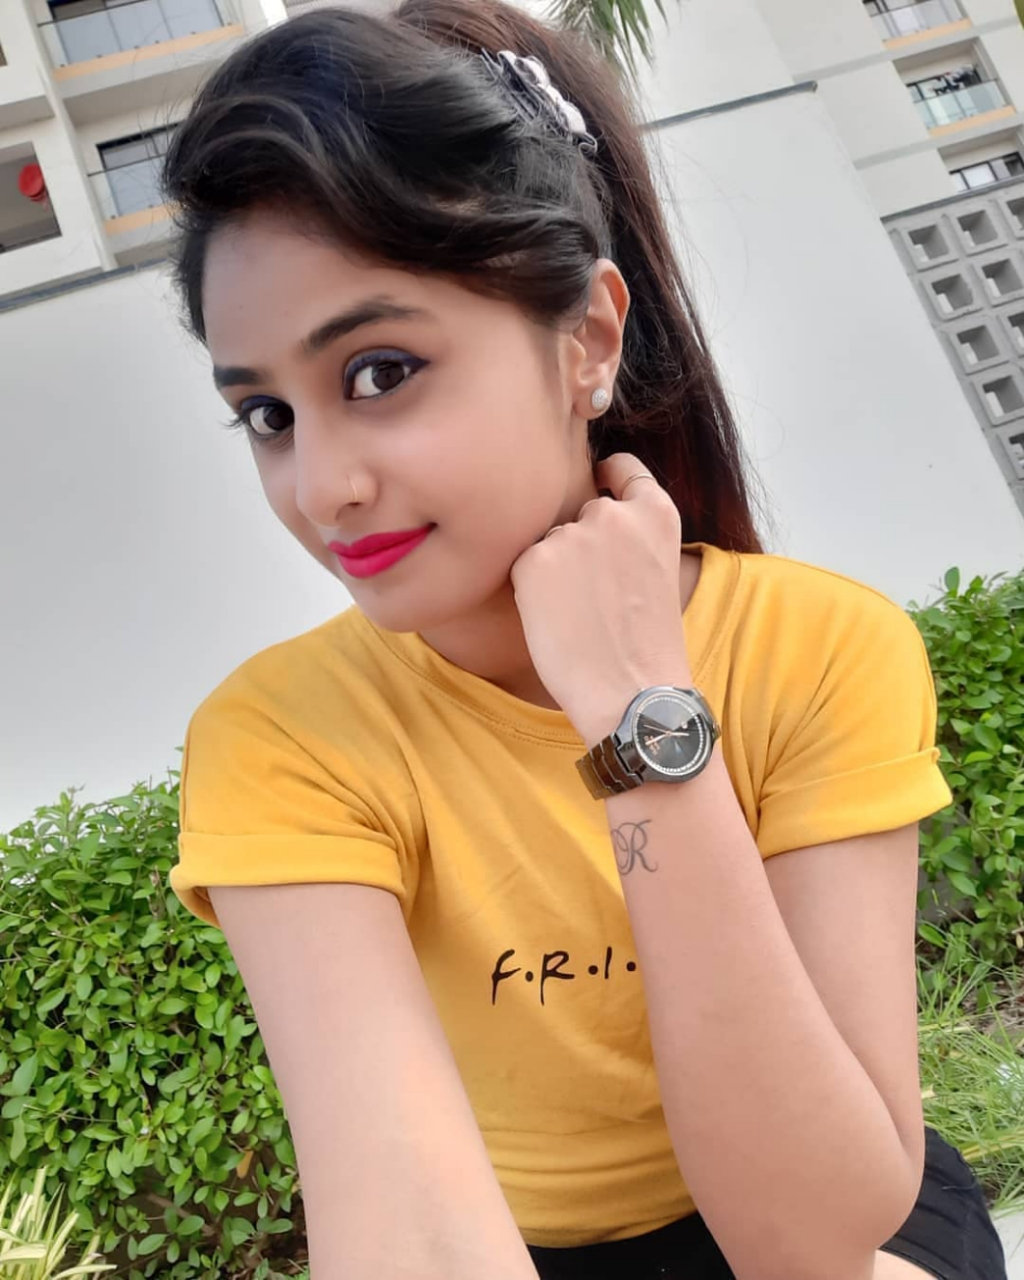 Girls whatsapp number for chatting and call (find your